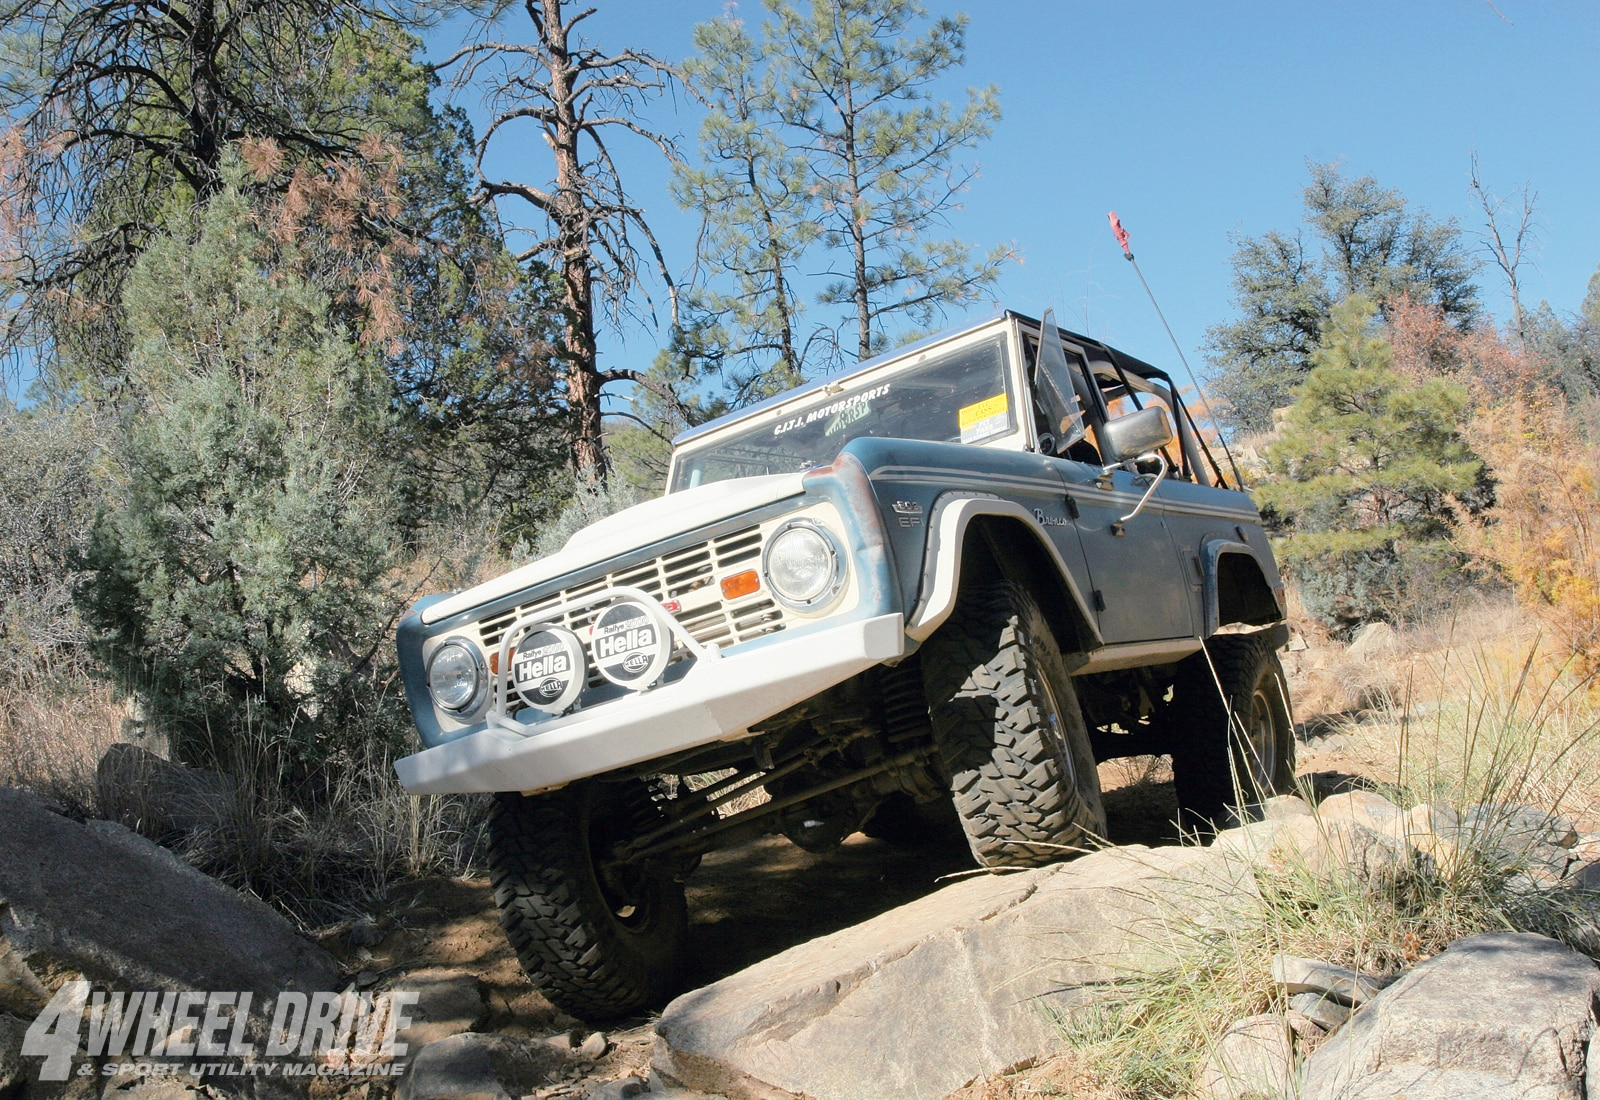 1004 4wd 04+bradshaw mountains+1969 ford bronco